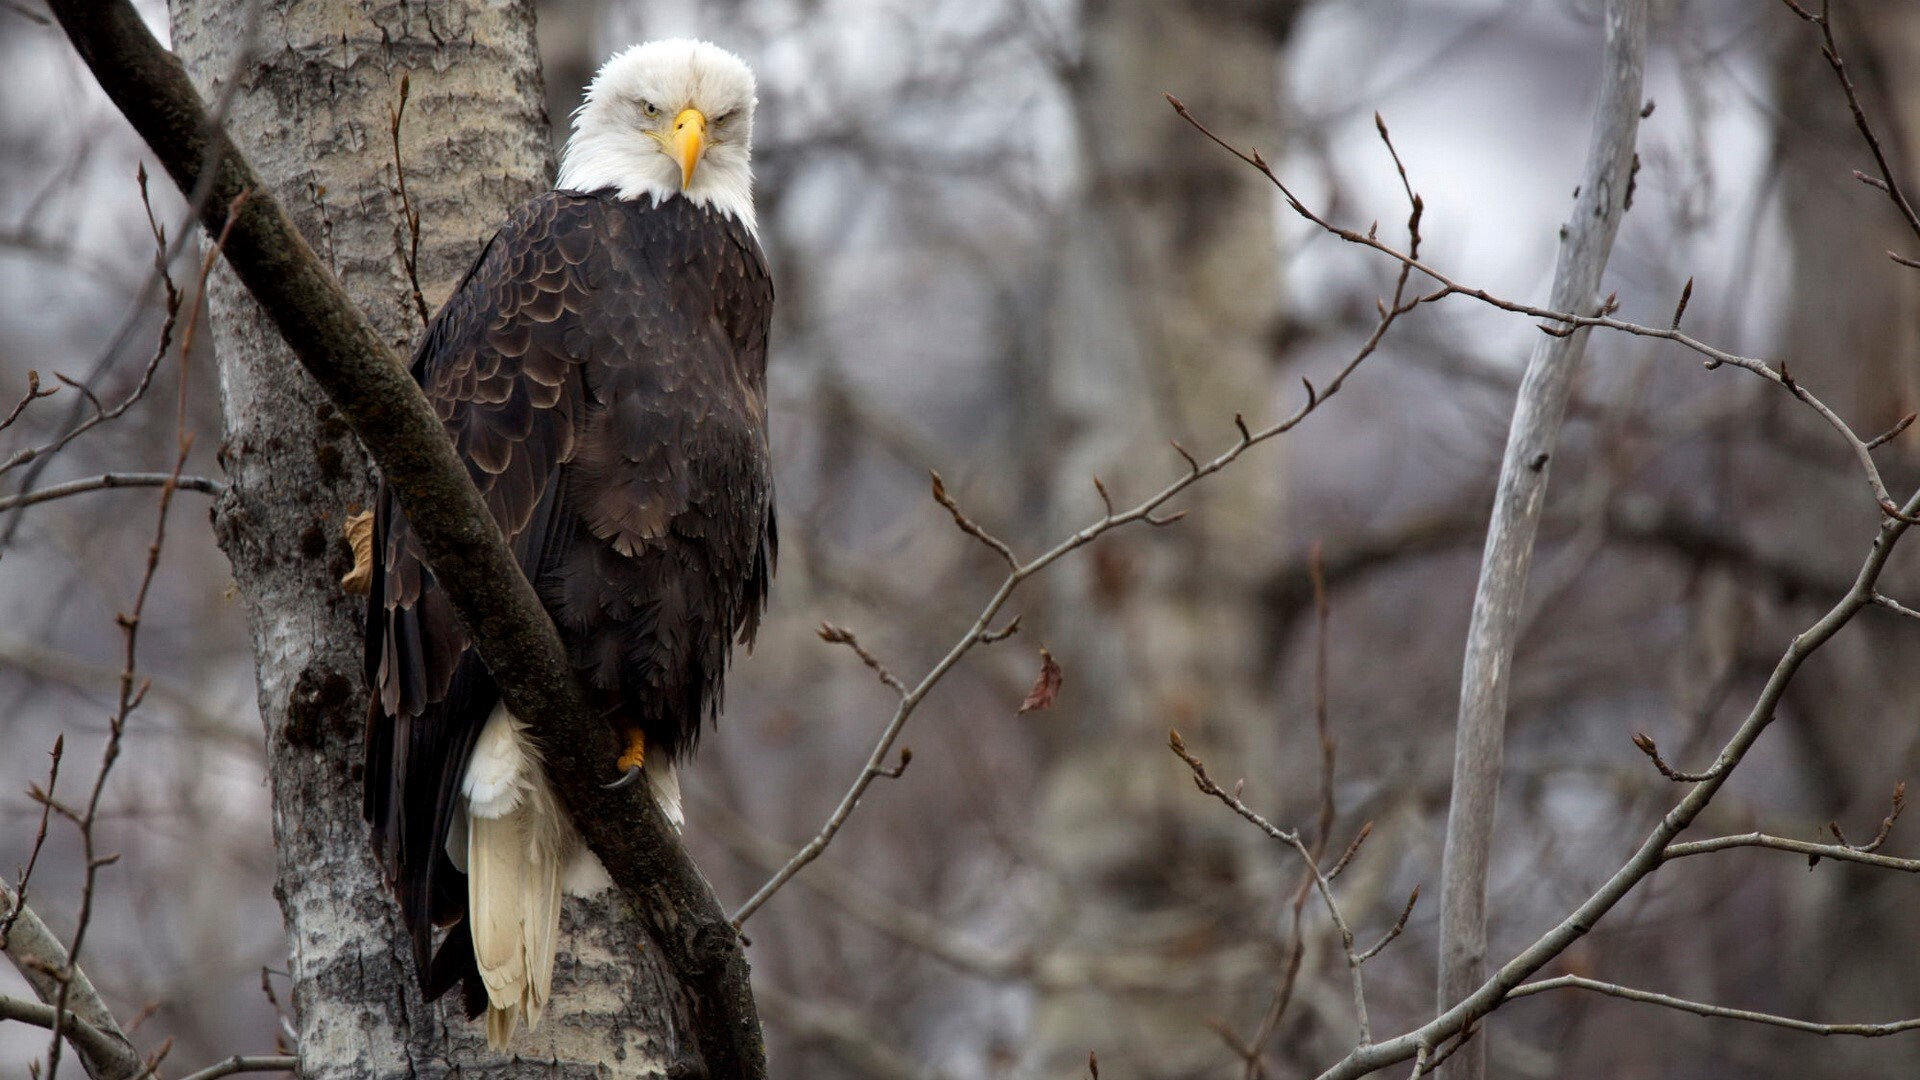 eagle looking smartly and sitting on tree branch wallpaper